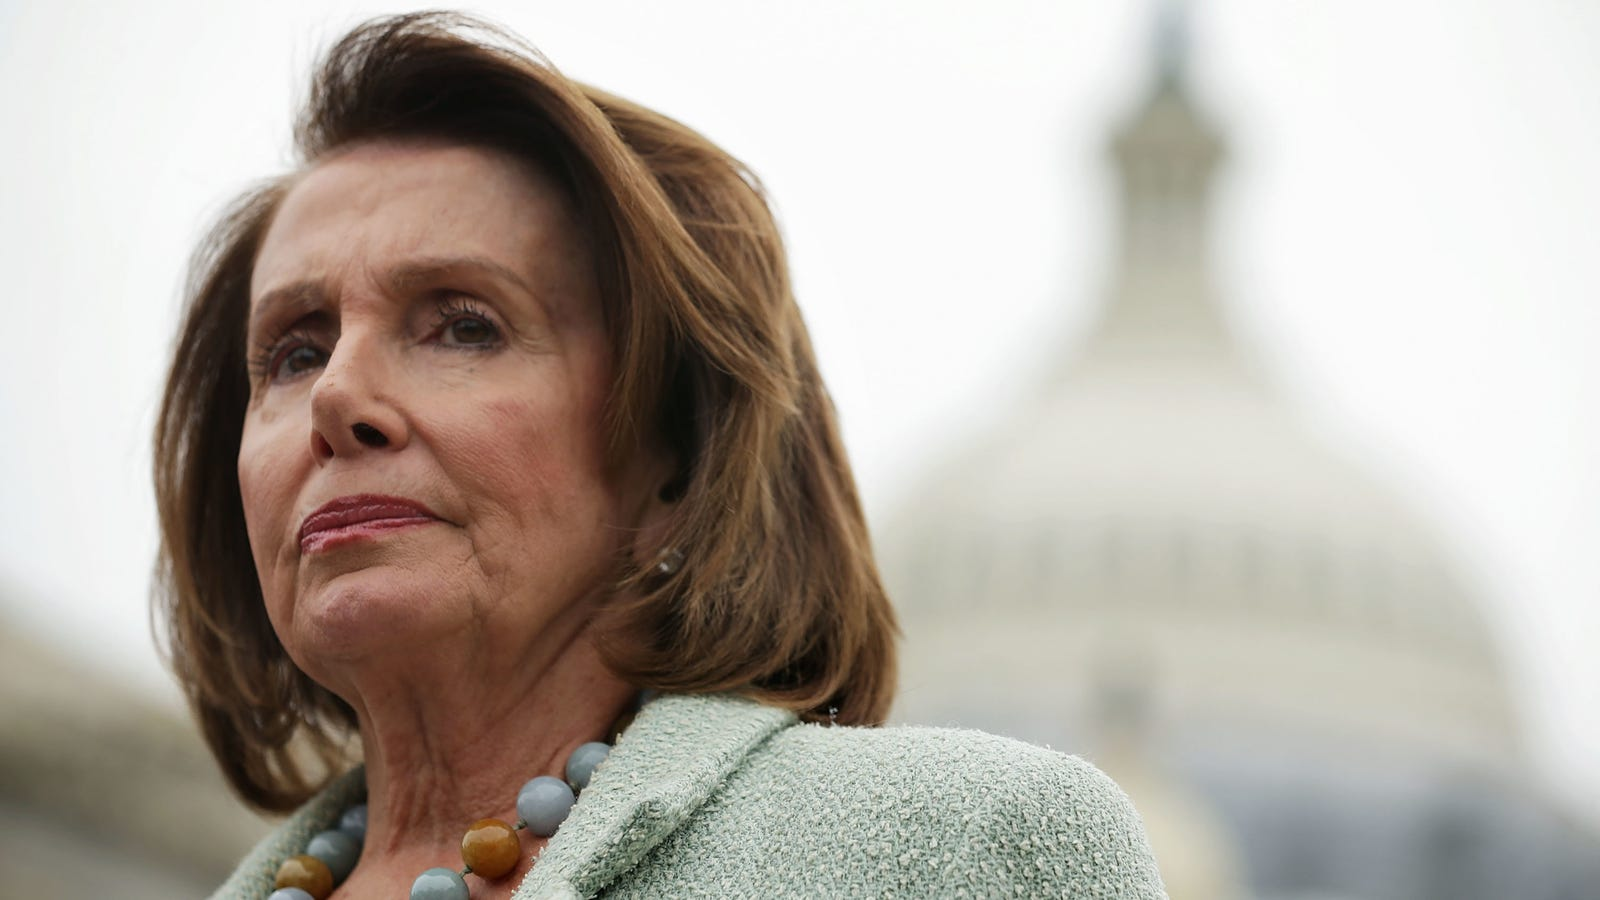 Watch Nancy Pelosi Announce a Formal Impeachment Inquiry into the President